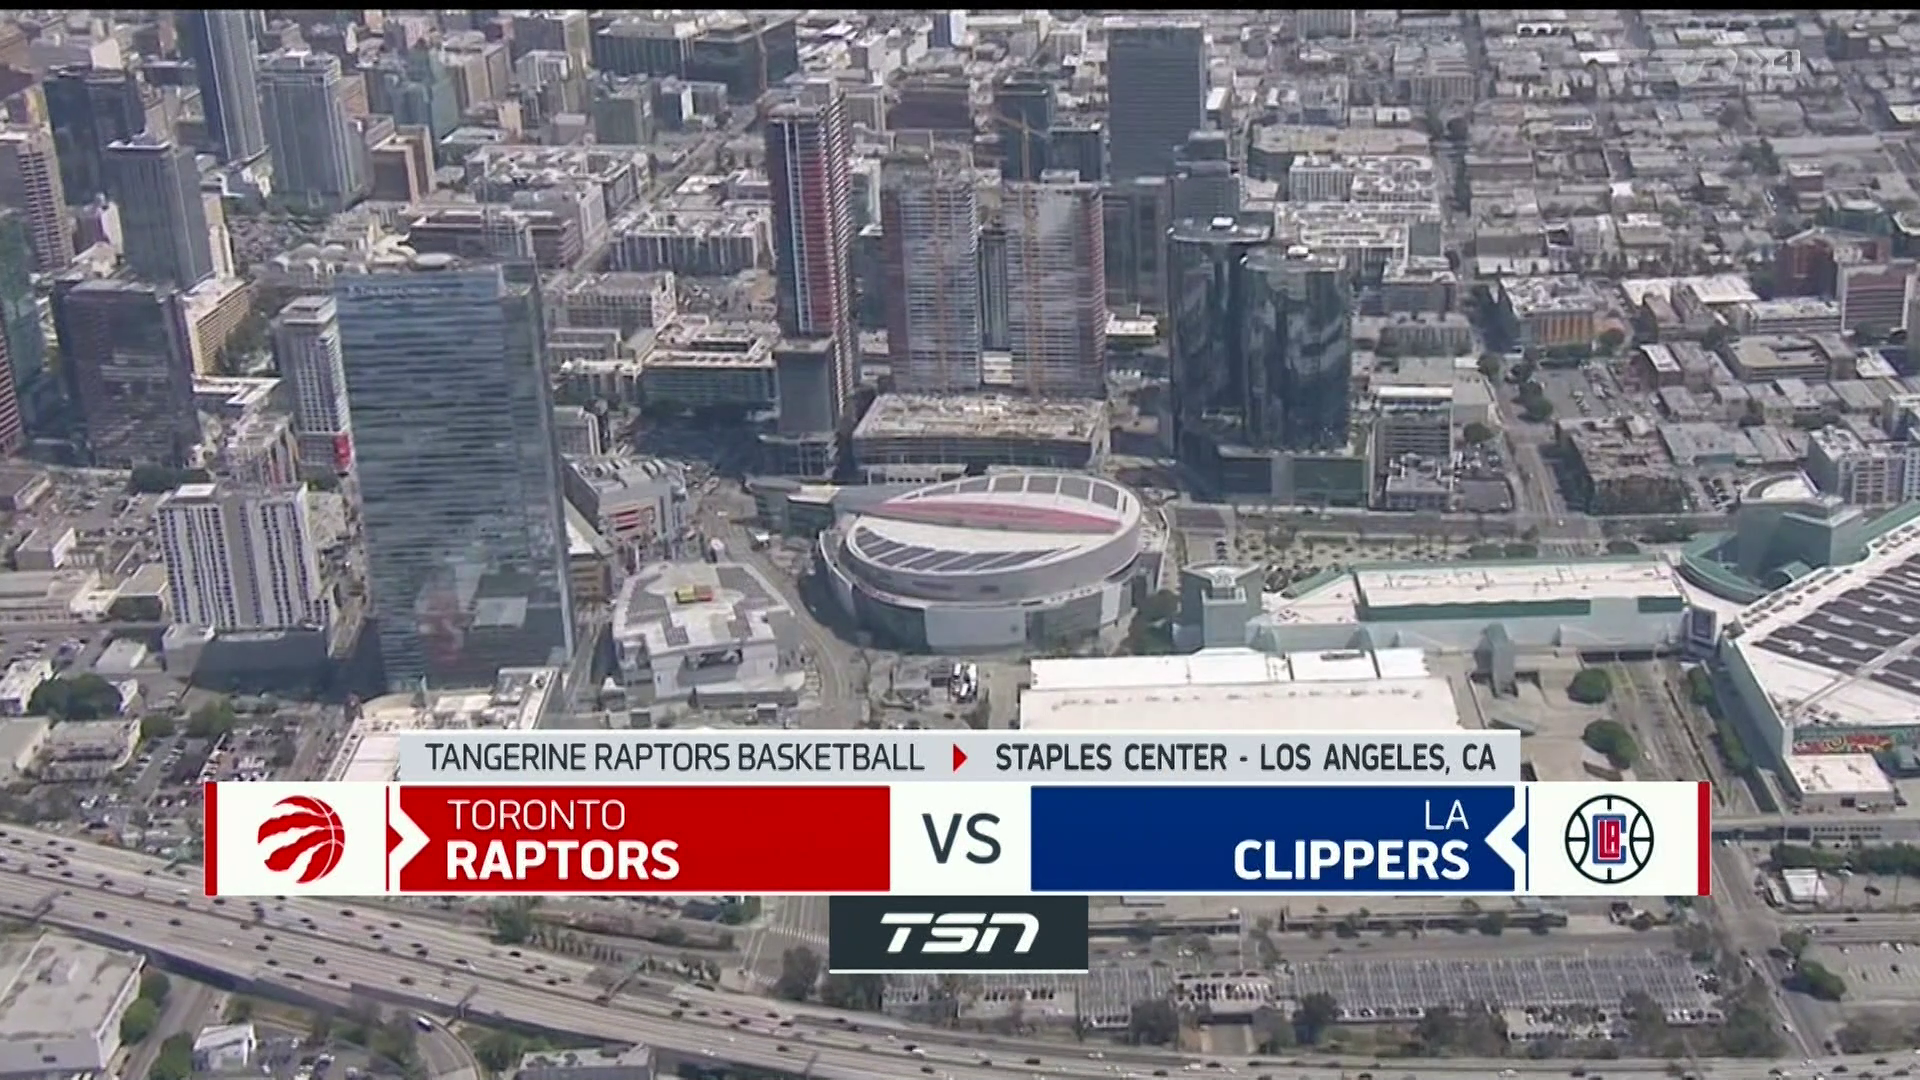 Tangerine Raptors Highlights: Raptors at Clippers- May 4, 2021